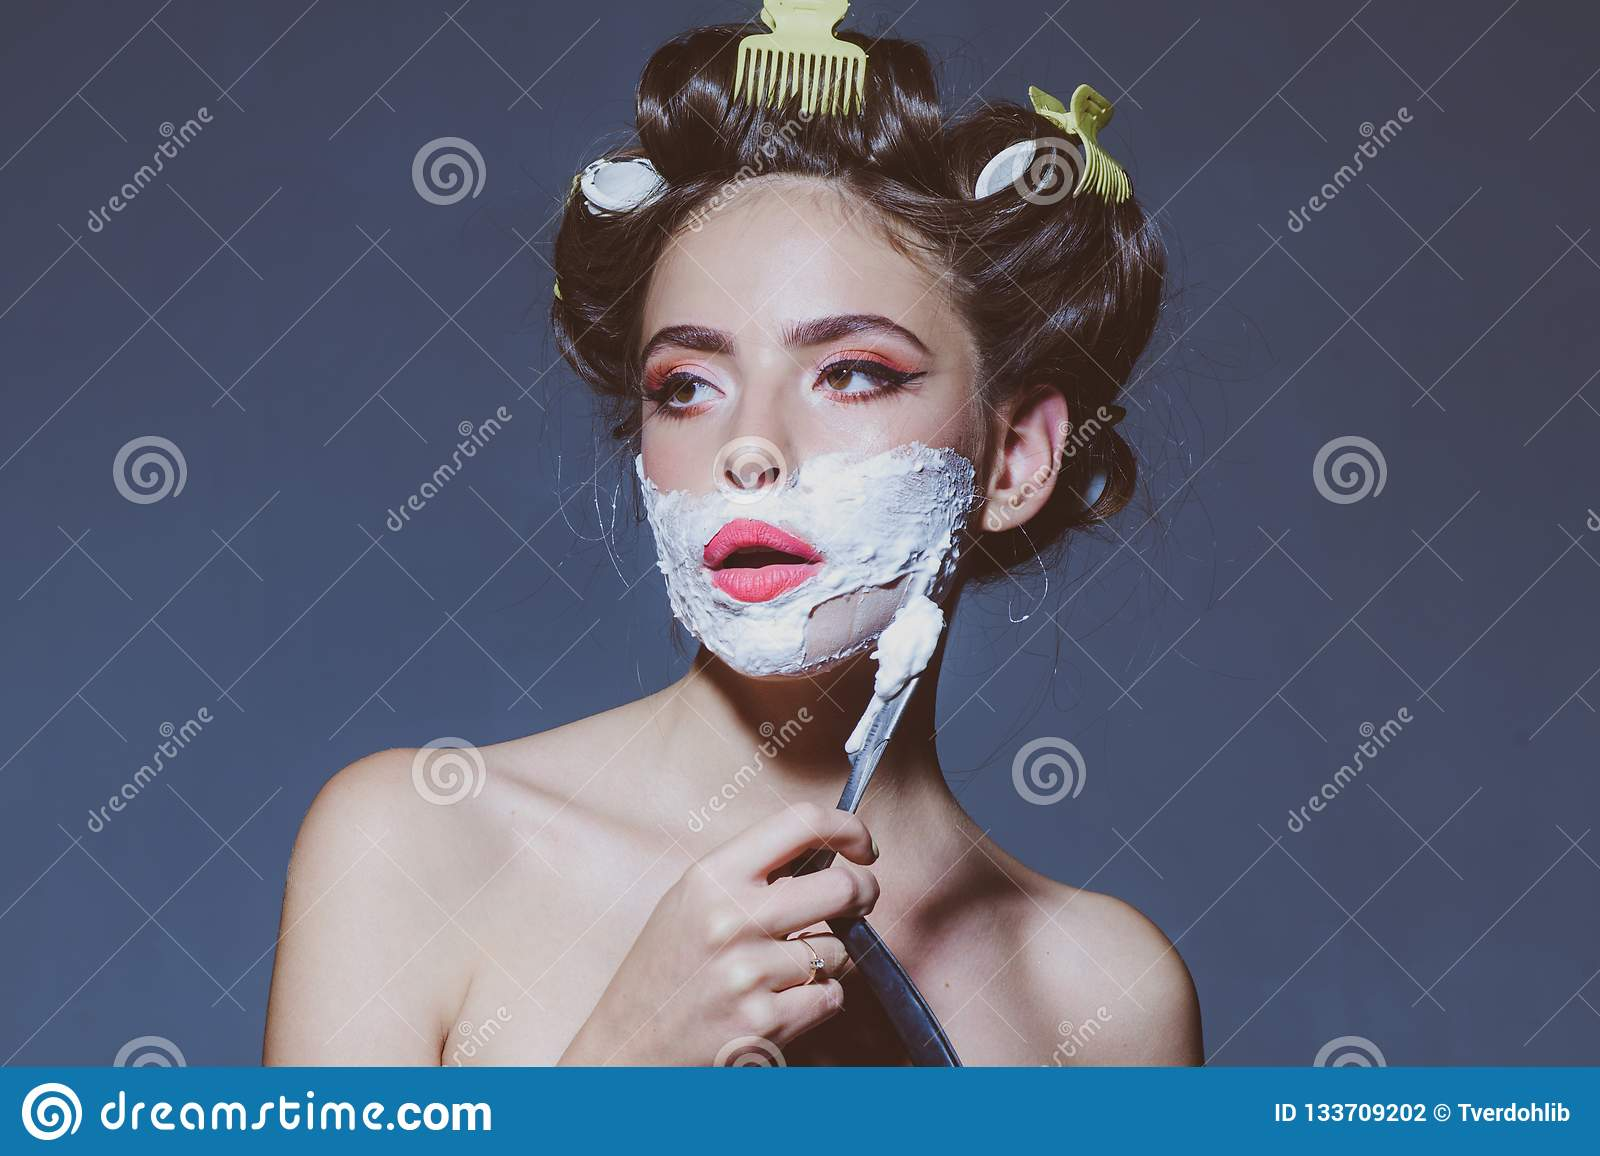 452d81e19f Morning grooming and skincare. pin up woman with trendy makeup. pinup girl  with fashion hair. retro woman shaving with foam and razor blade. pretty  girl in ...